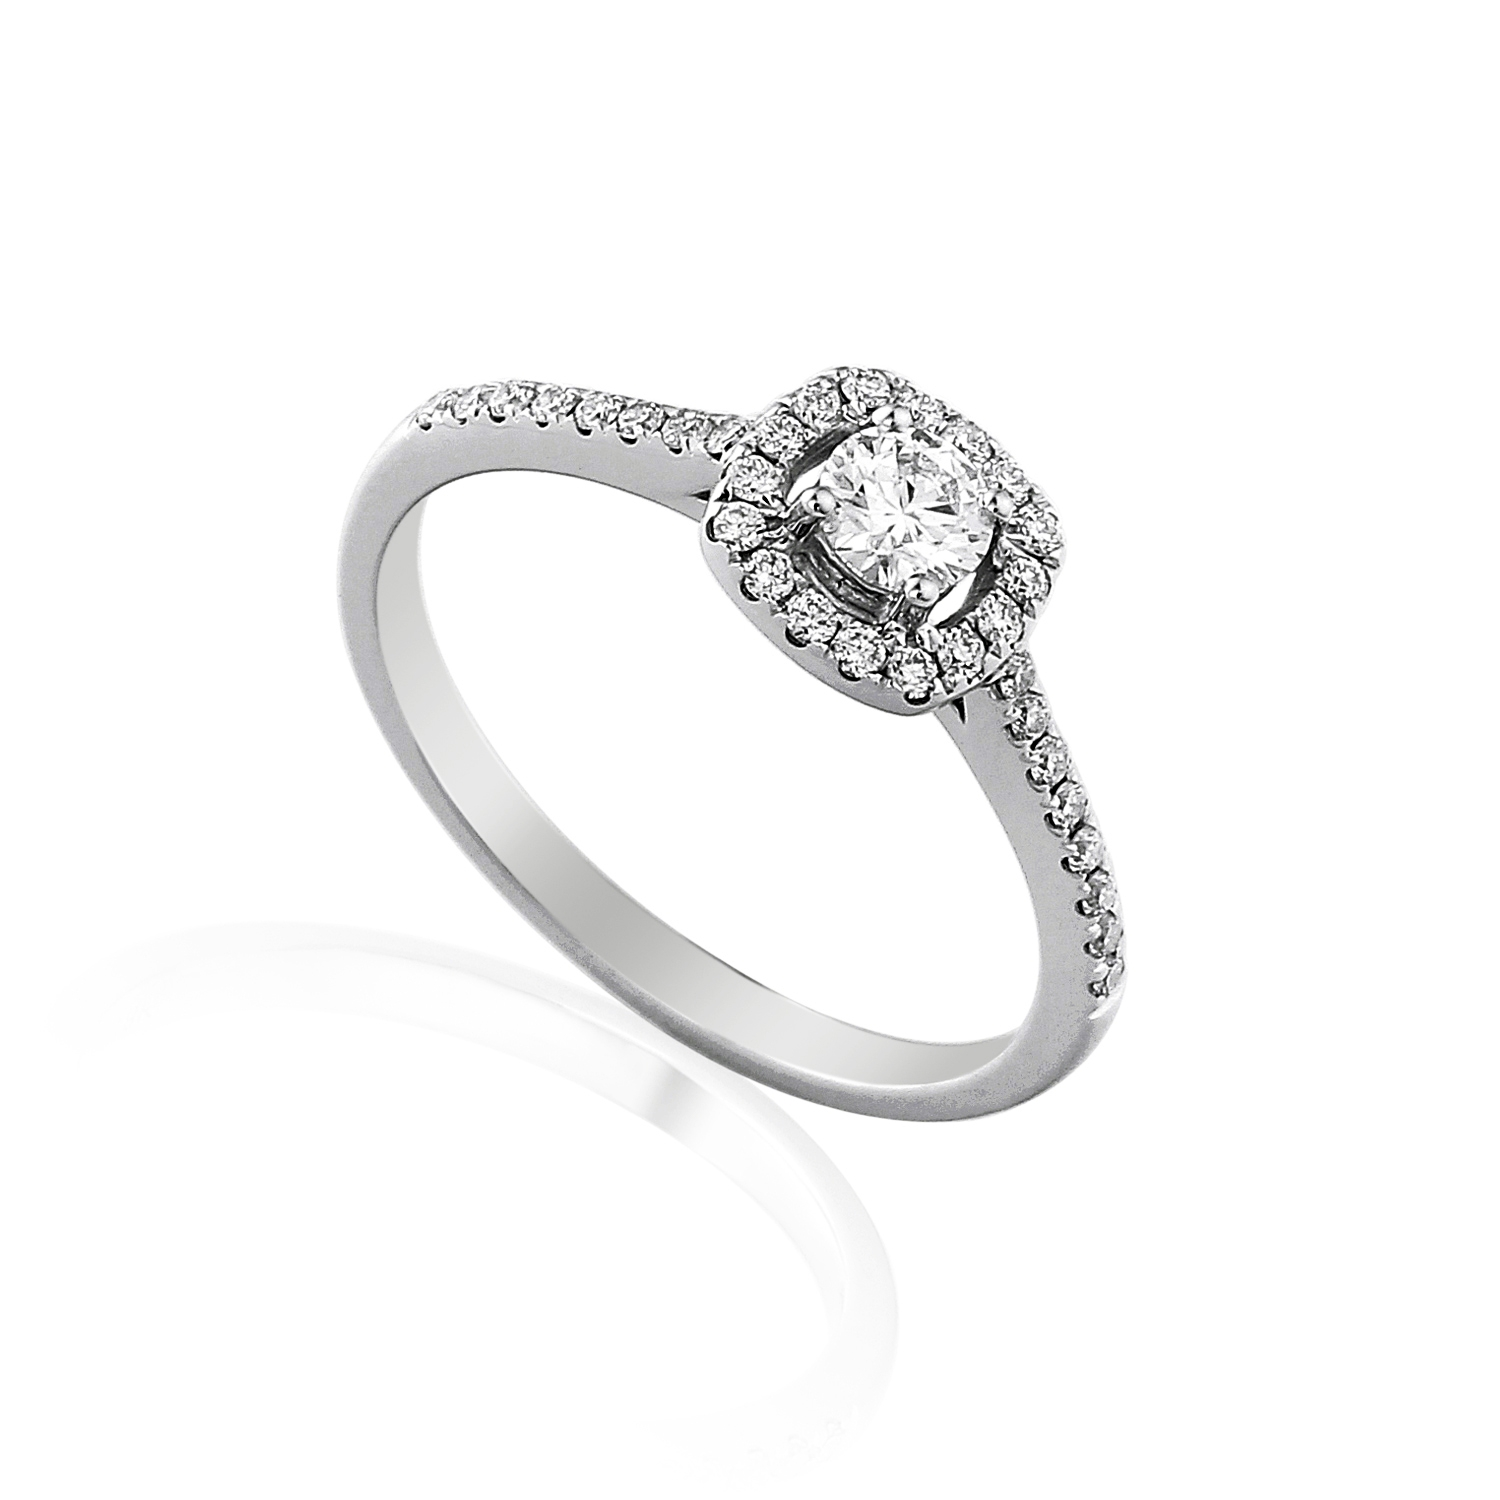 Brilliant Cut Diamond Ring with a Cushion Shaped Halo Surround-0